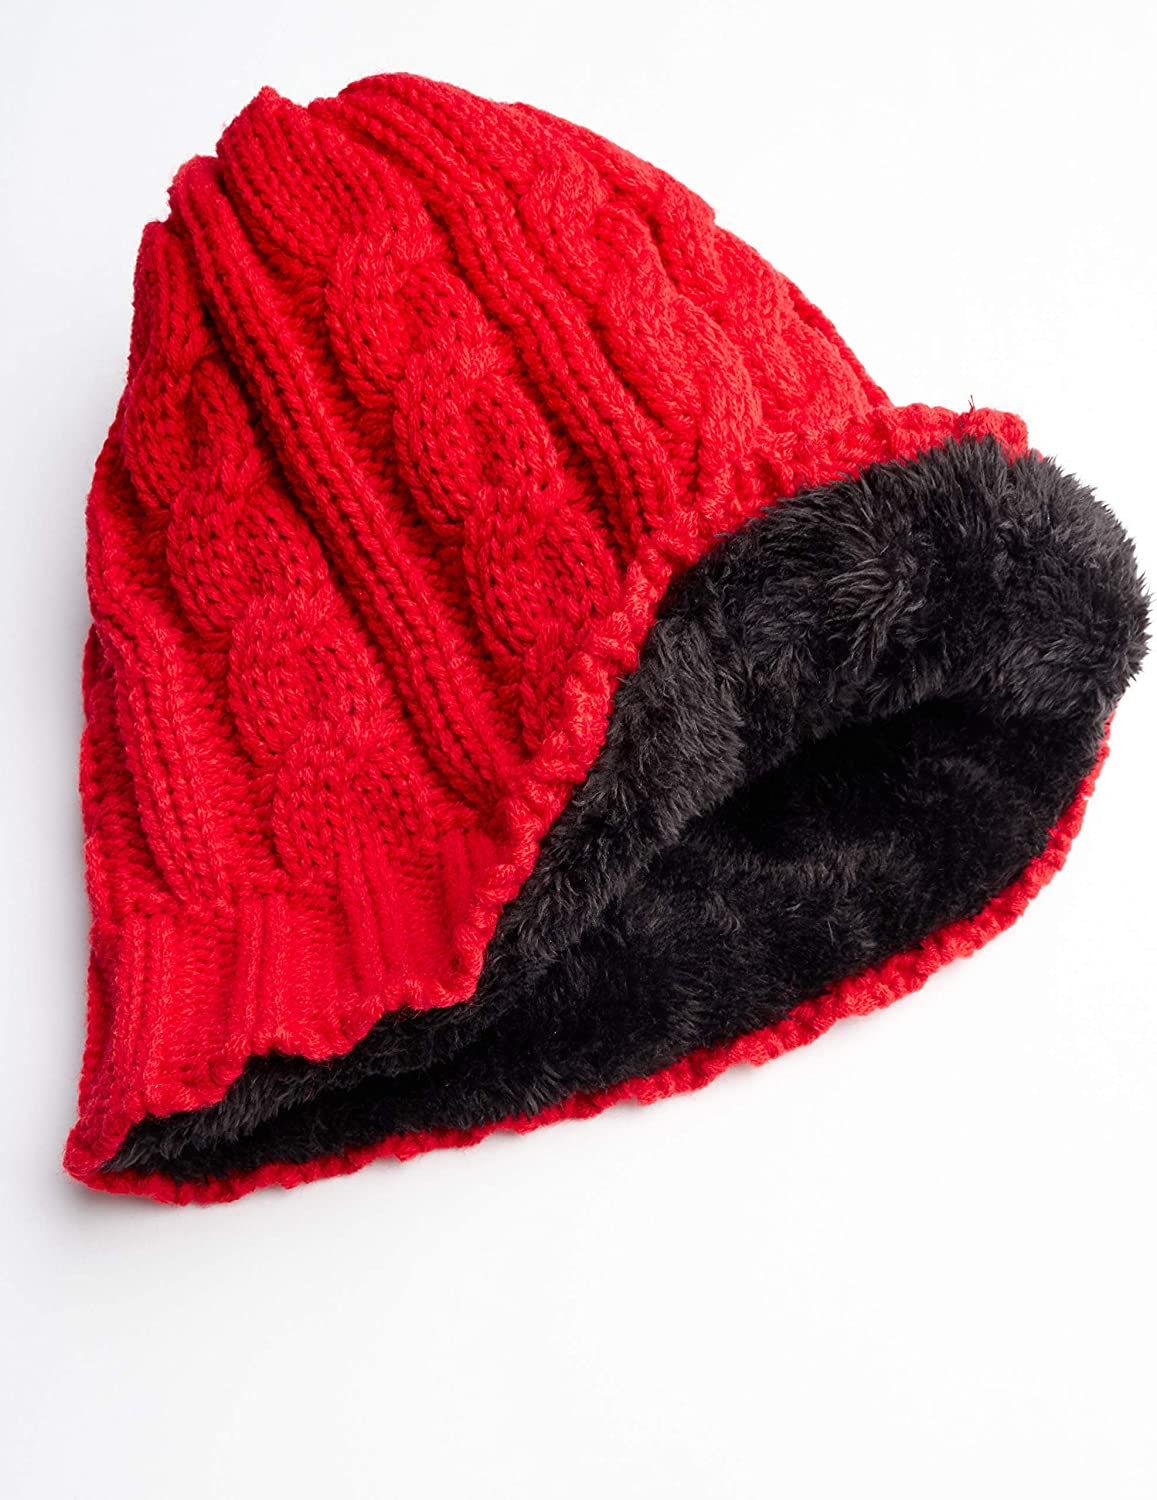 Size 7-16 CANADA WEATHER GEAR Girls Faux Fur Lined Cable Knit Beanie Hat